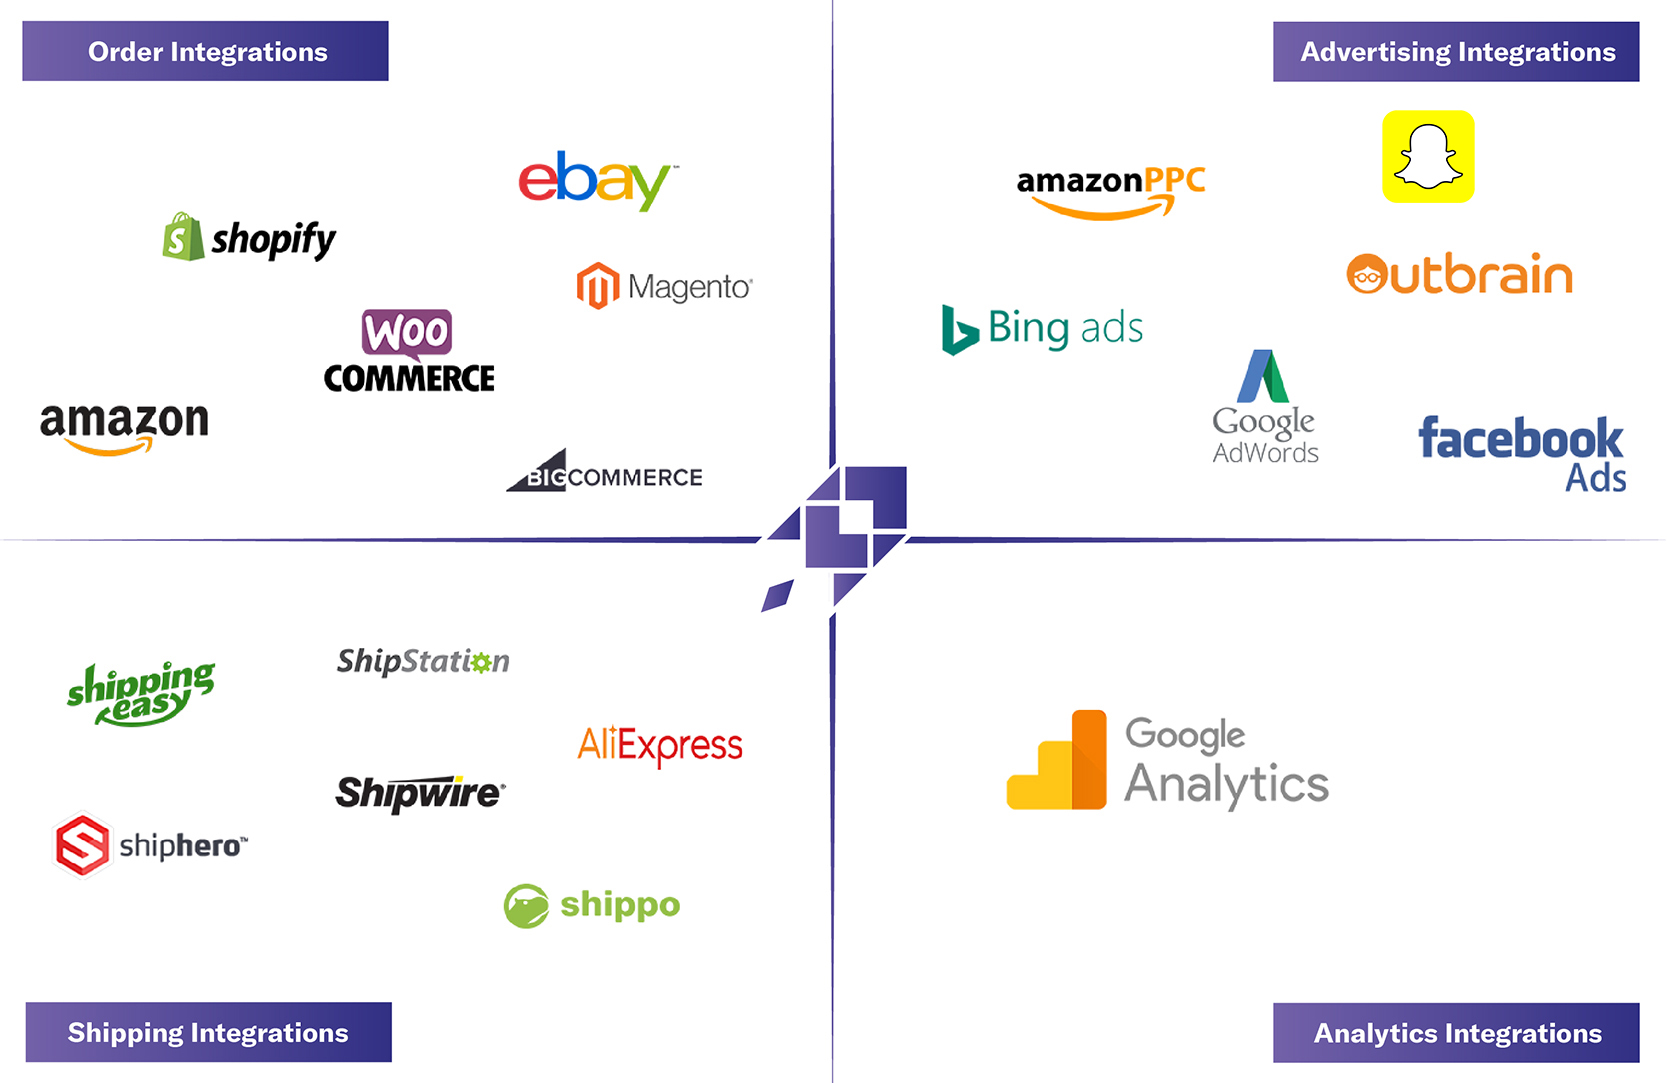 Automate analysis with our integrations